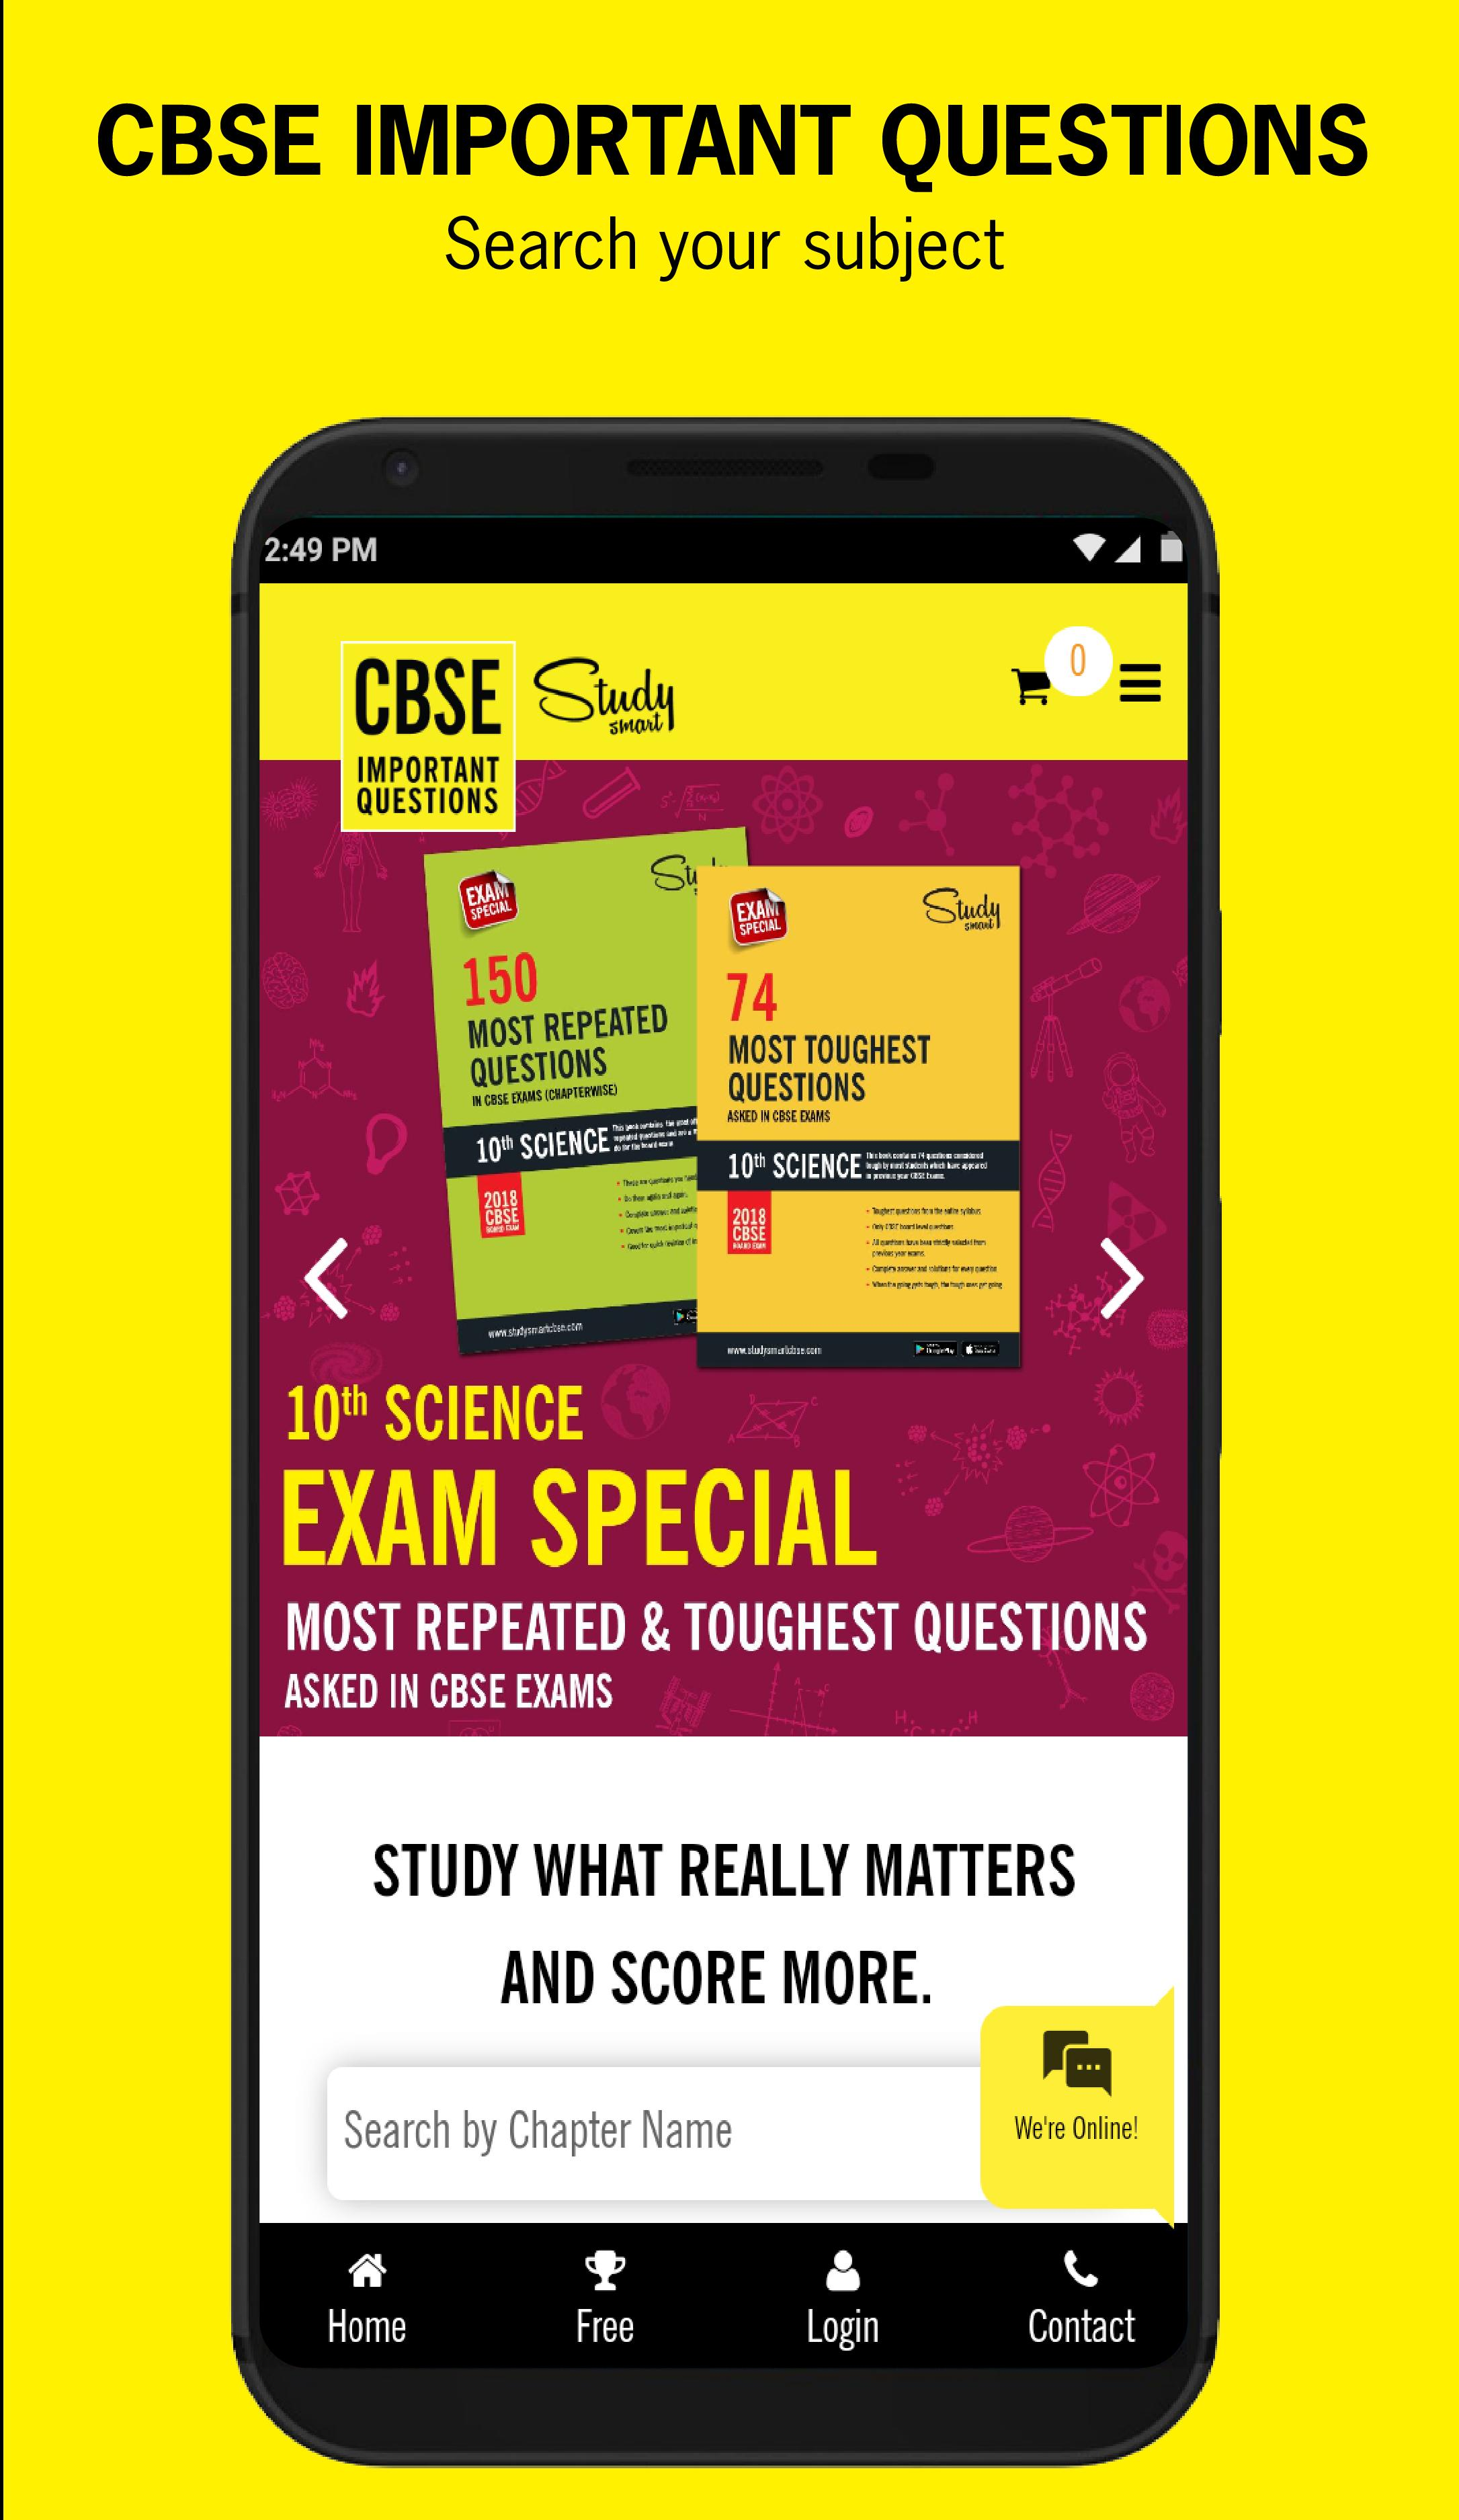 CBSE IMPORTANT QUESTIONS for Android - APK Download